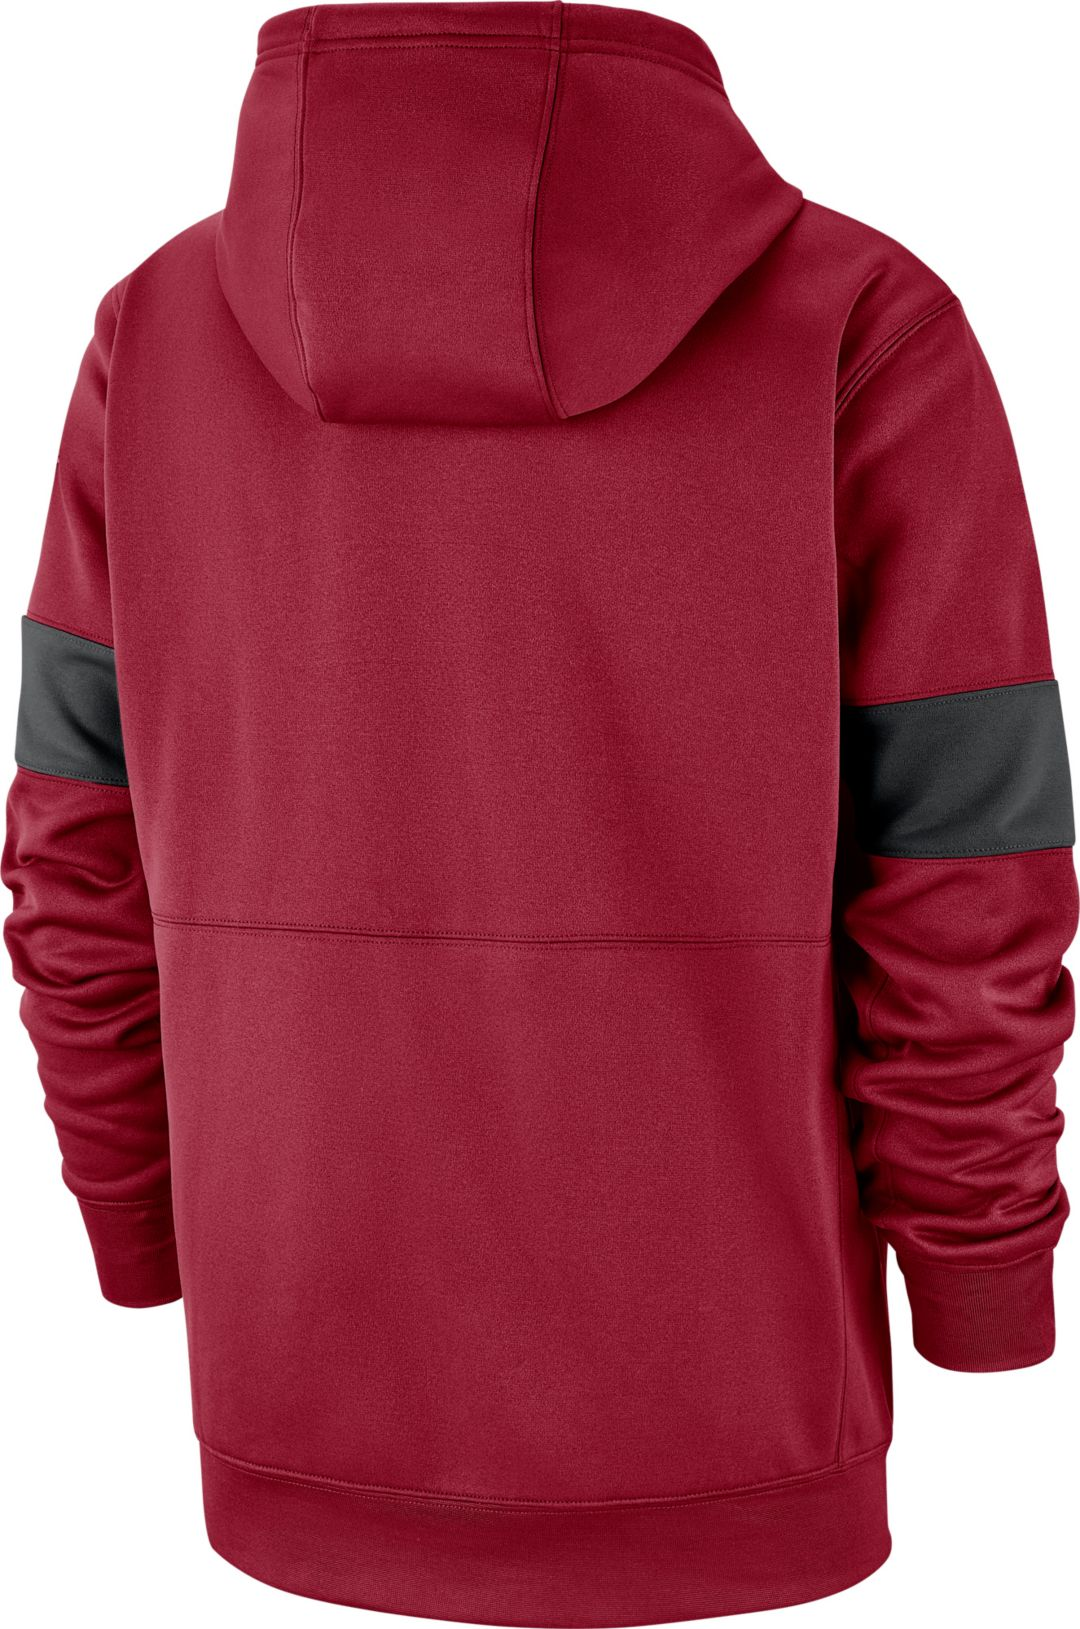 849f99b2a3 Nike Men's Stanford Cardinal Cardinal Therma Football Sideline Pullover  Hoodie